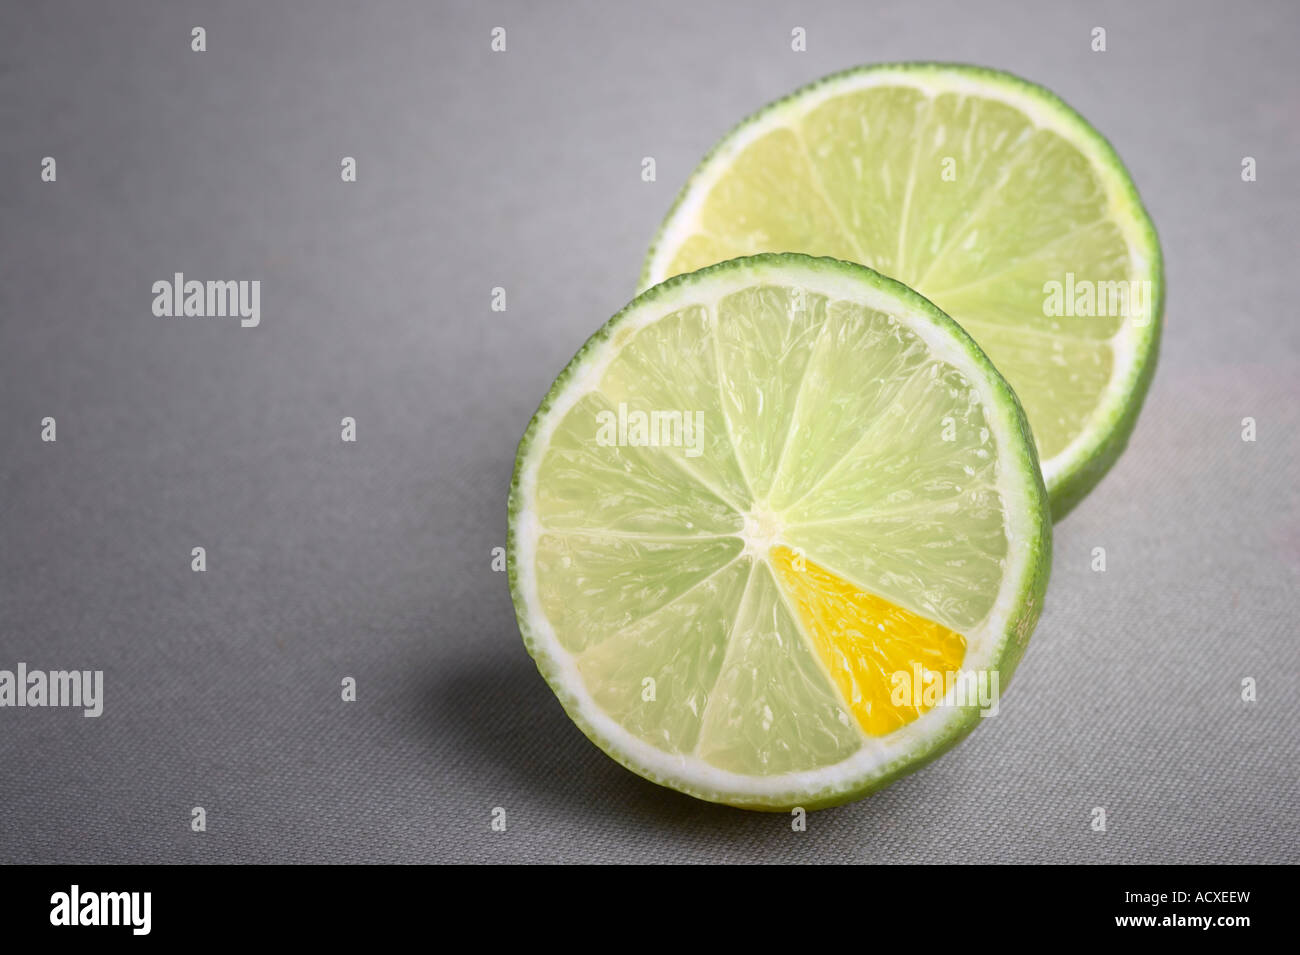 Slices of Lime fruits with one segment colored orange on a gray cloth background - Stock Image